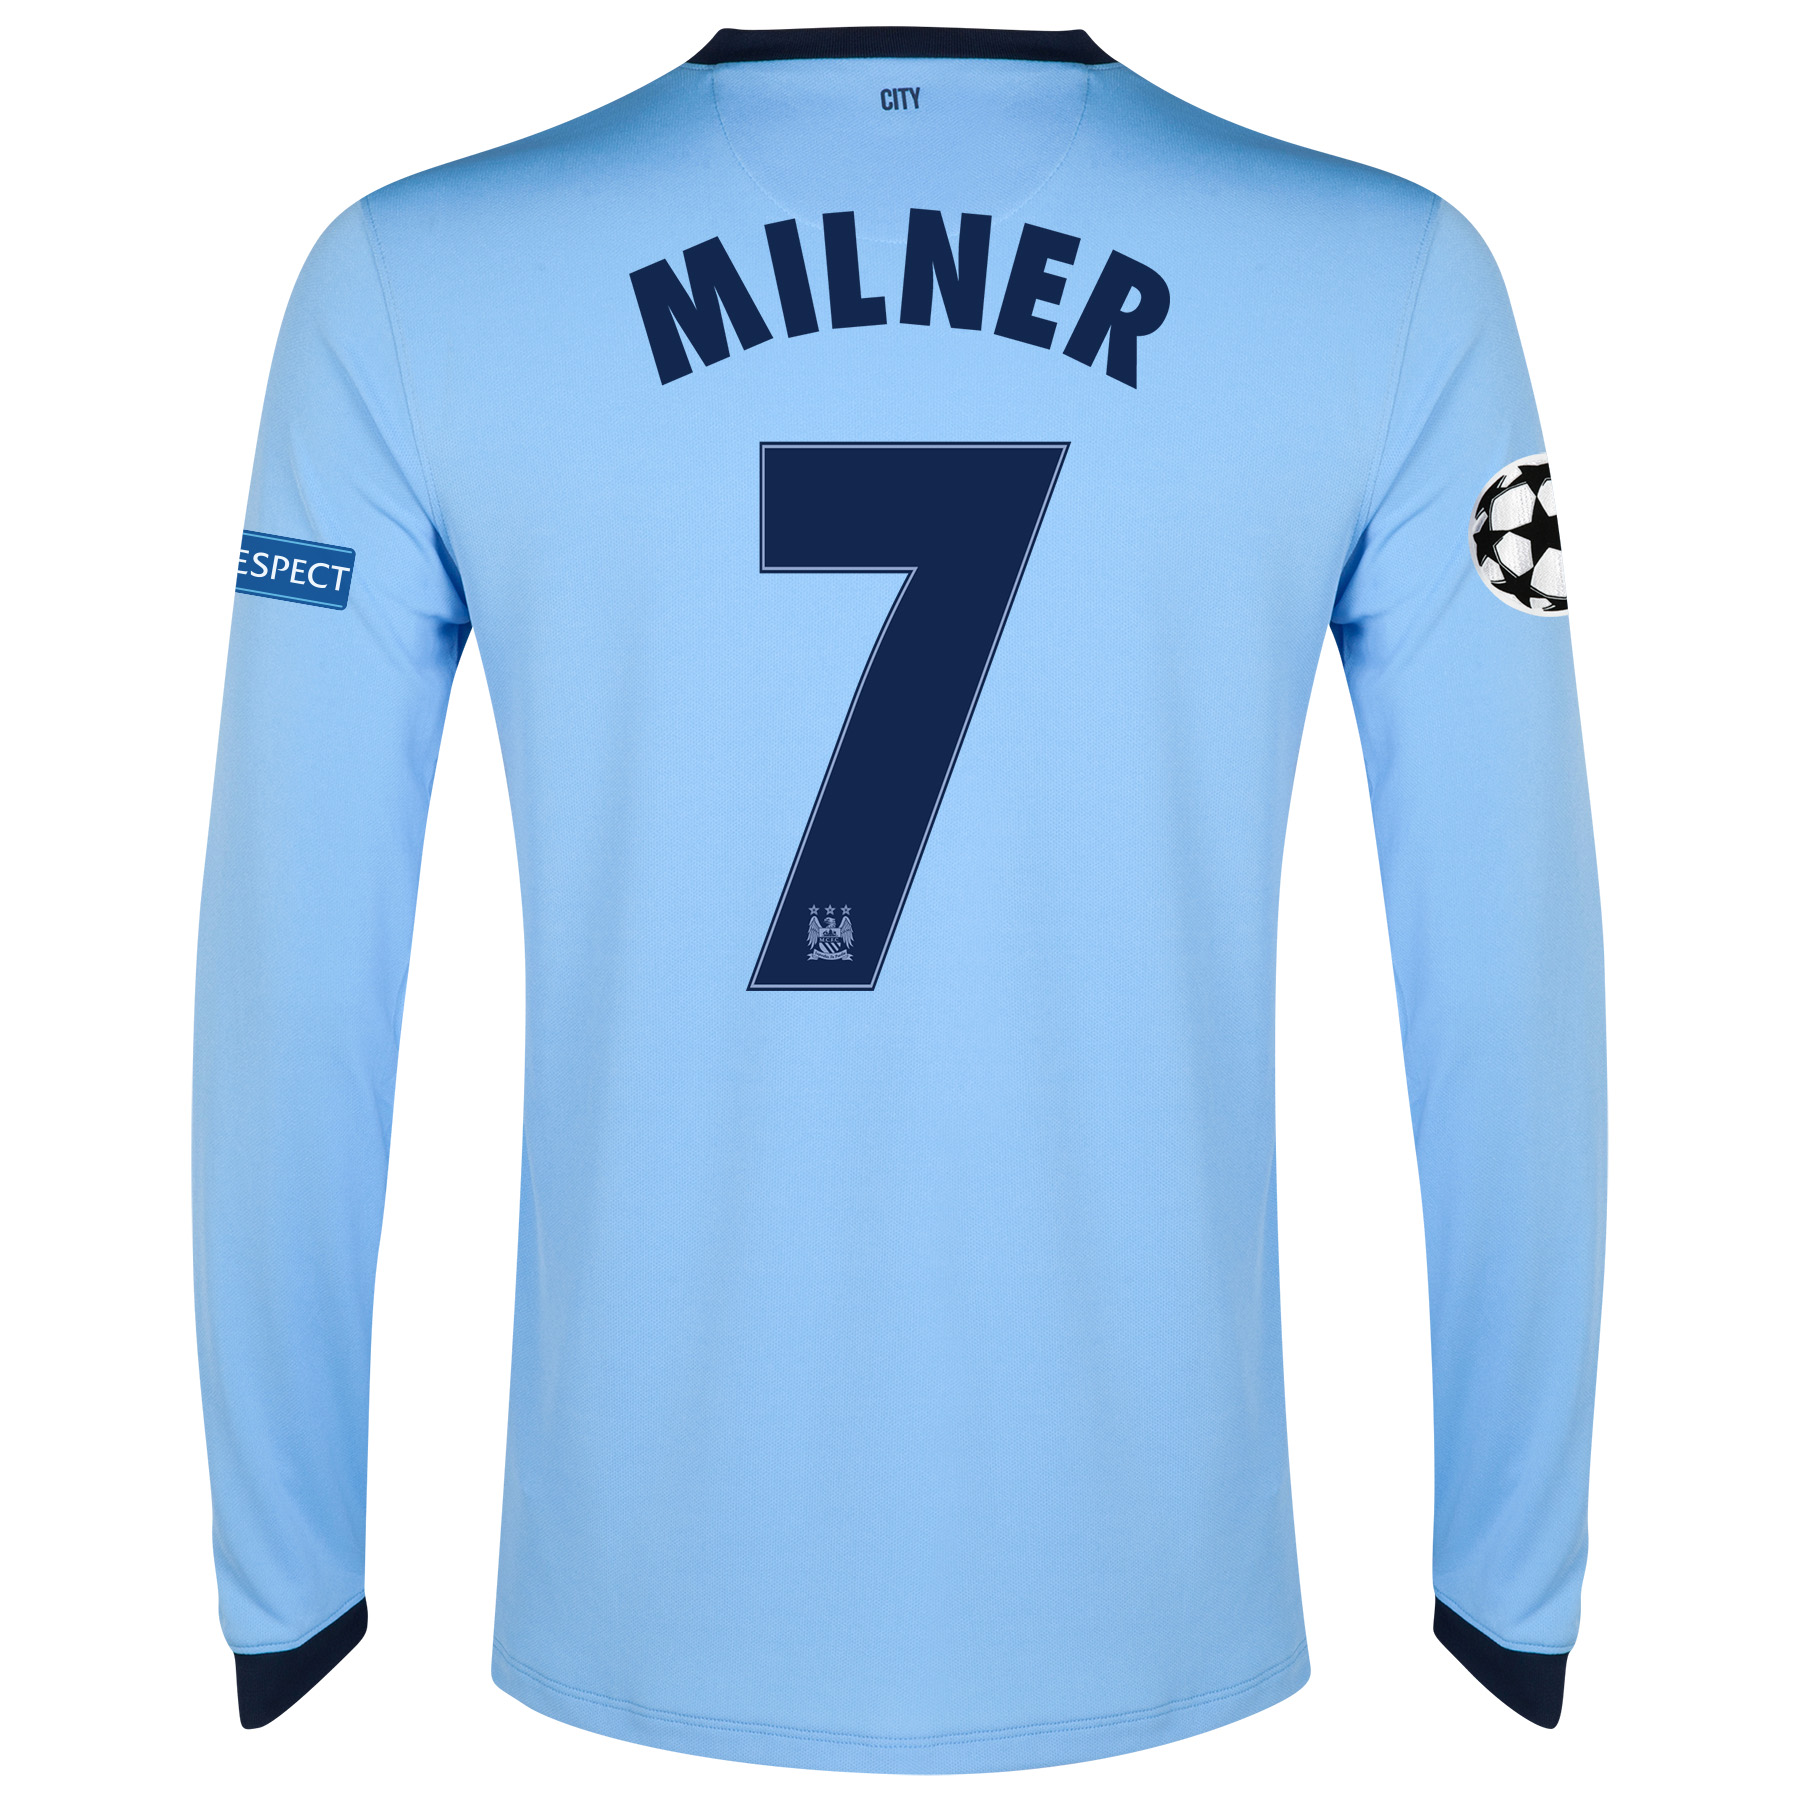 Manchester City UEFA Champions League Home Shirt 2014/15 - Long Sleeve - Kids Sky Blue with Milner 7 printing